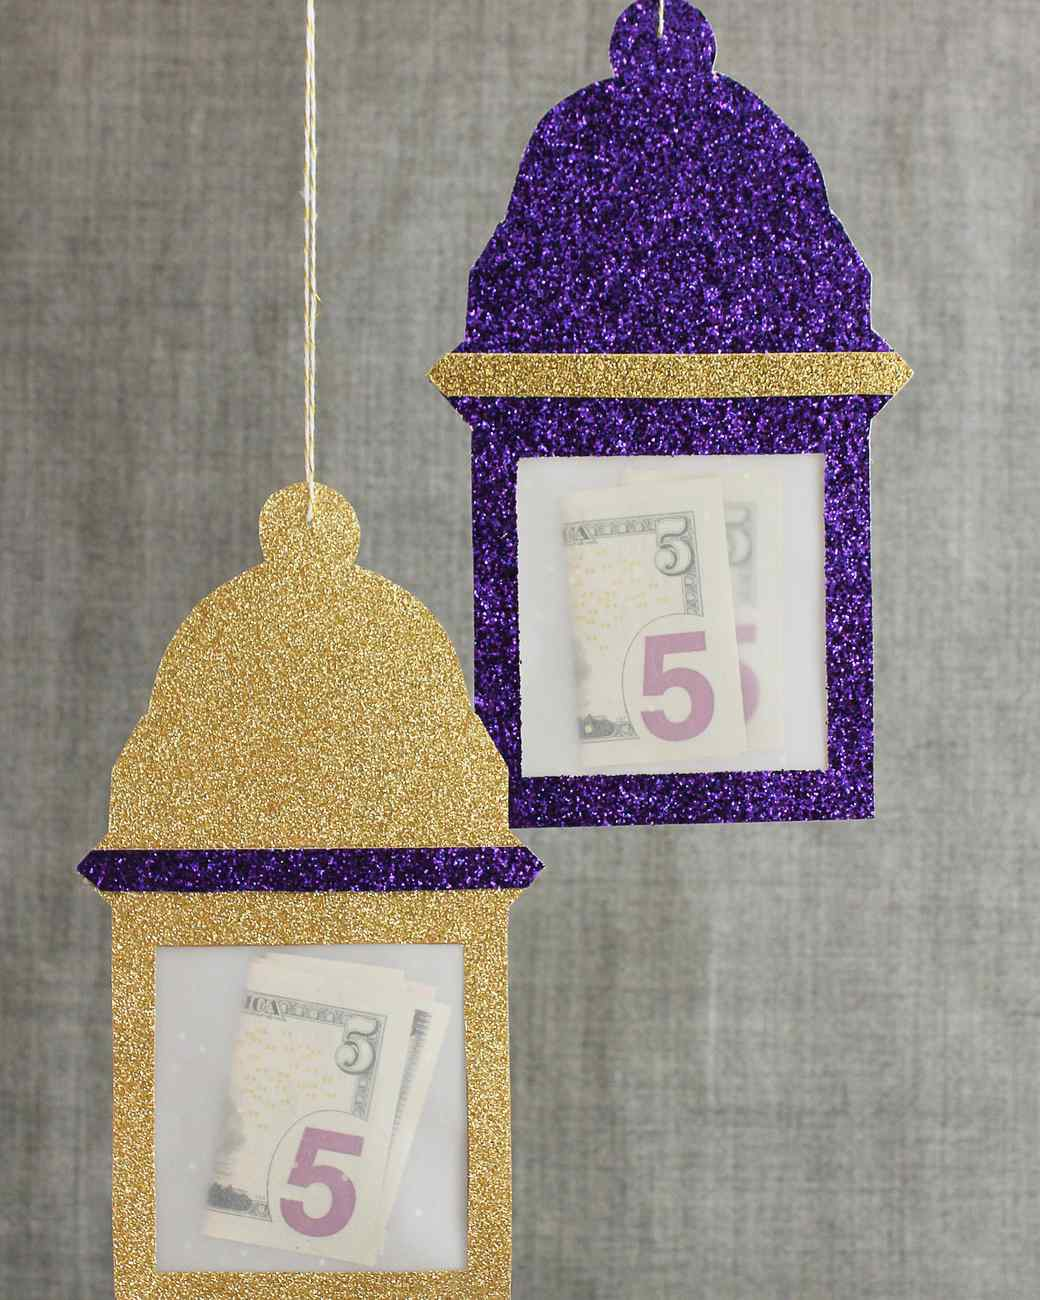 Lantern-Shaped Eid Money Envelopes